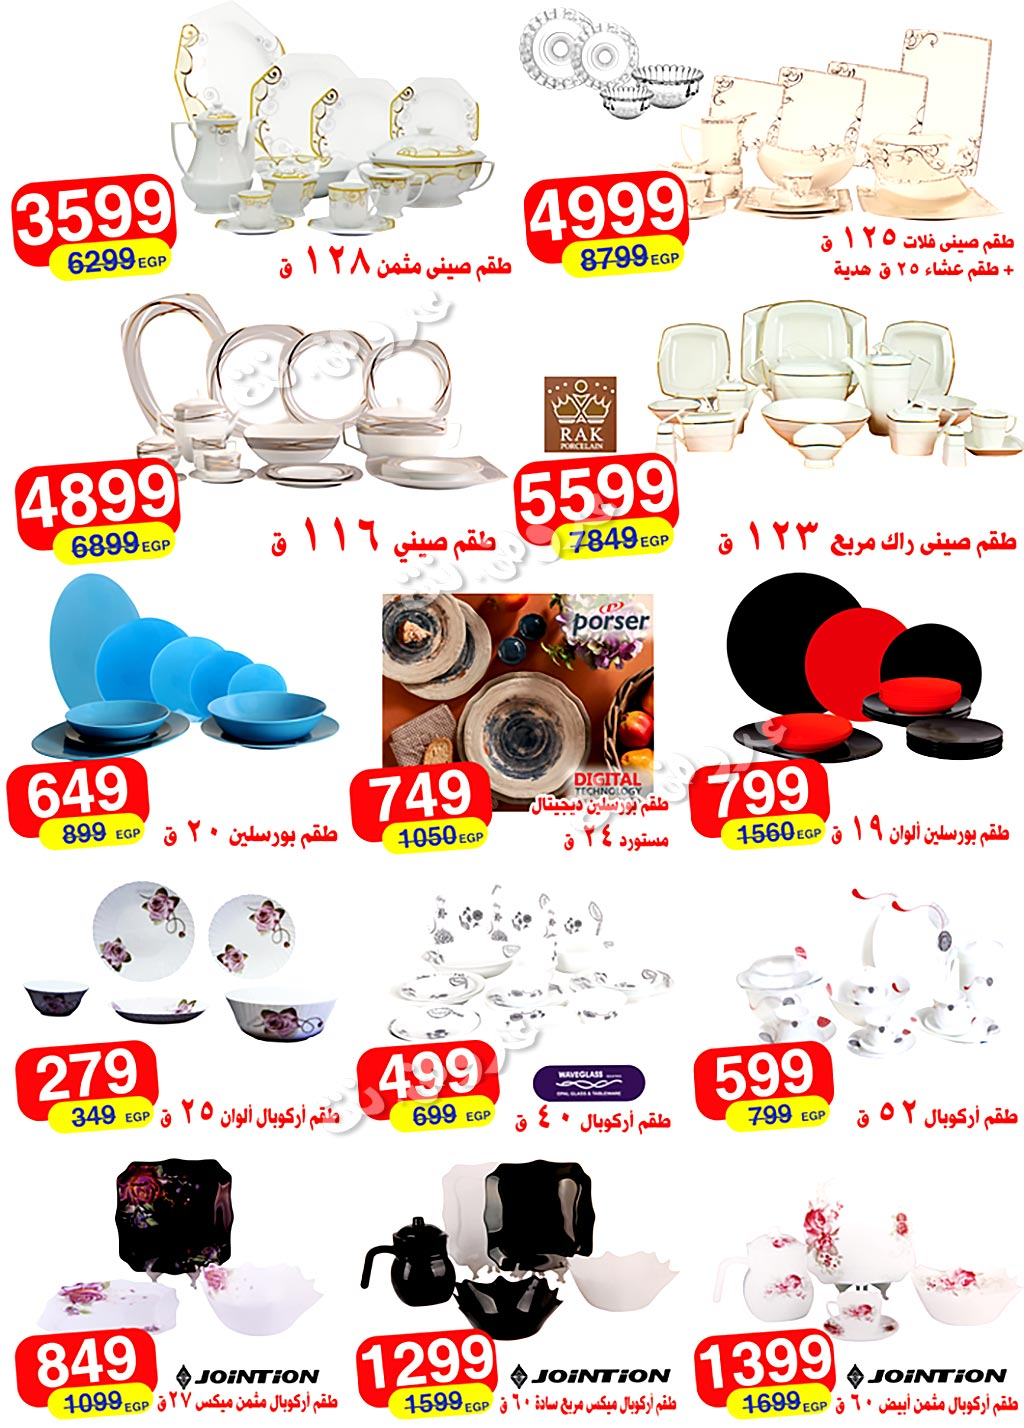 almorshedy offers from 16sep to 30sep 2020 page number 17 عروض أسواق المرشدى من 16 سبتمبر حتى 30 سبتمبر 2020 صفحة رقم 17